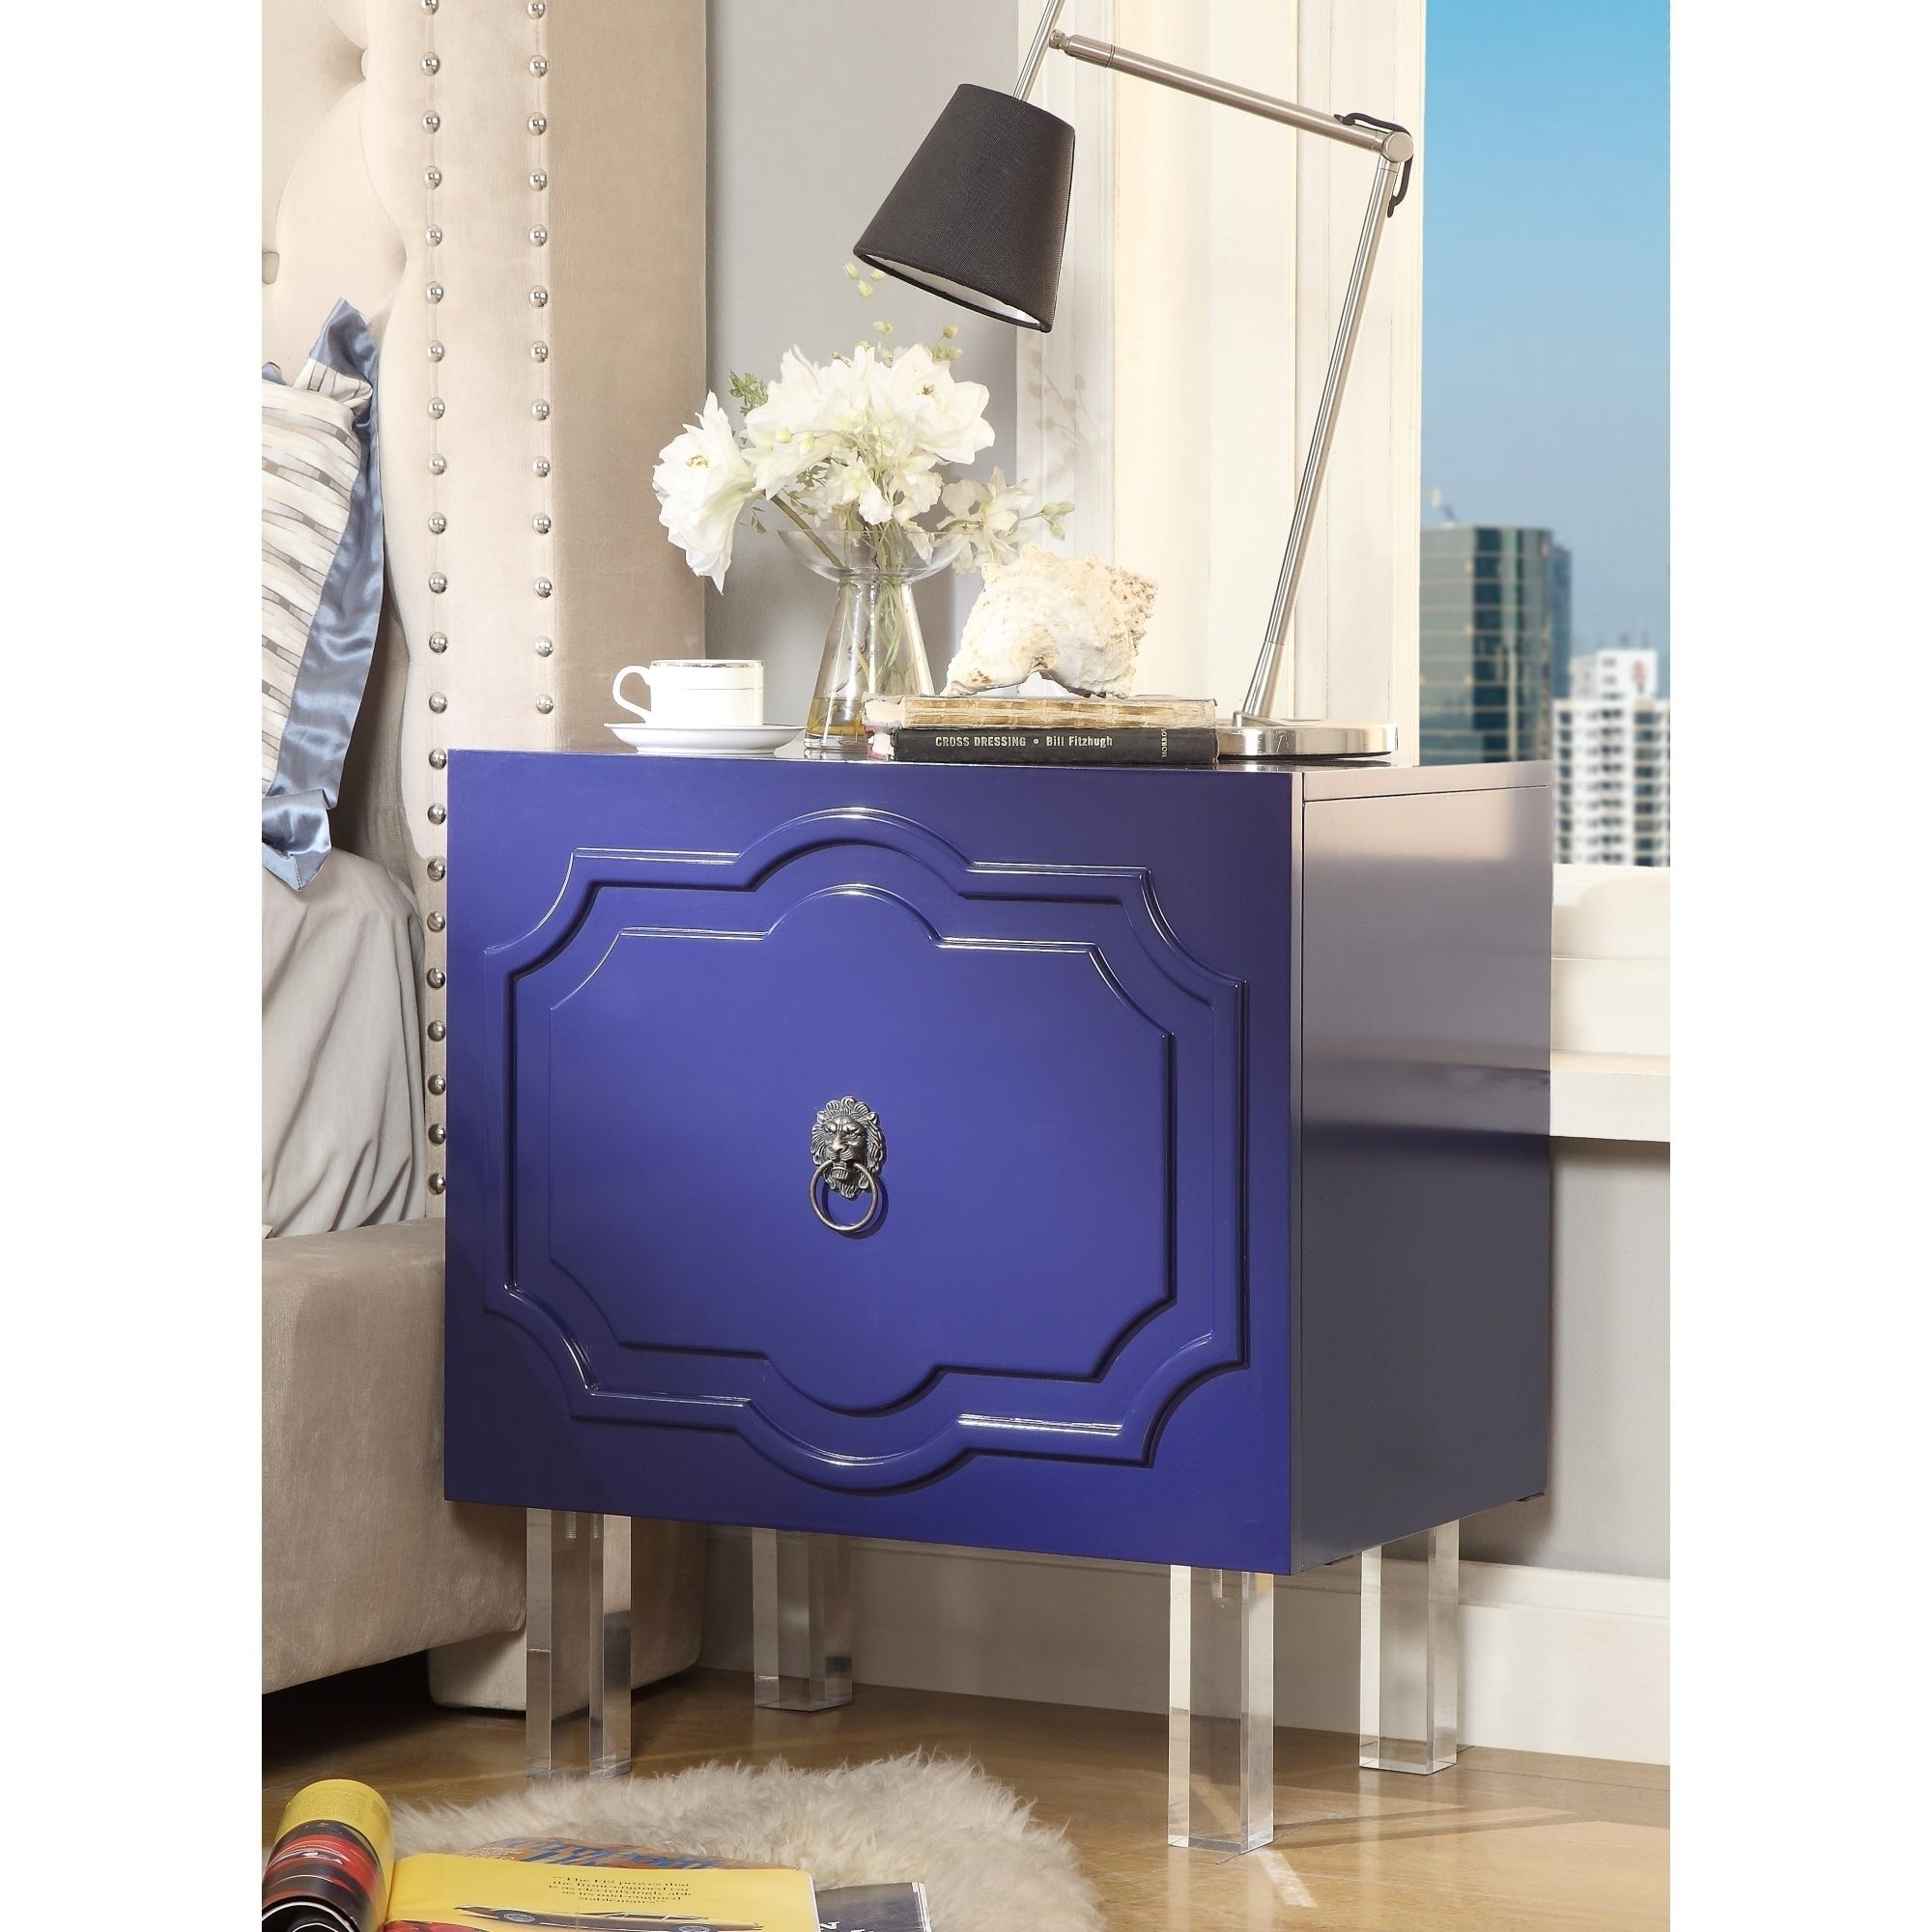 gobi mdf wood lacquer chrome side table accent nightstand navy blue west elm industrial lucite solar umbrella cocktail sets cherry dining room and chairs frosted glass coffee